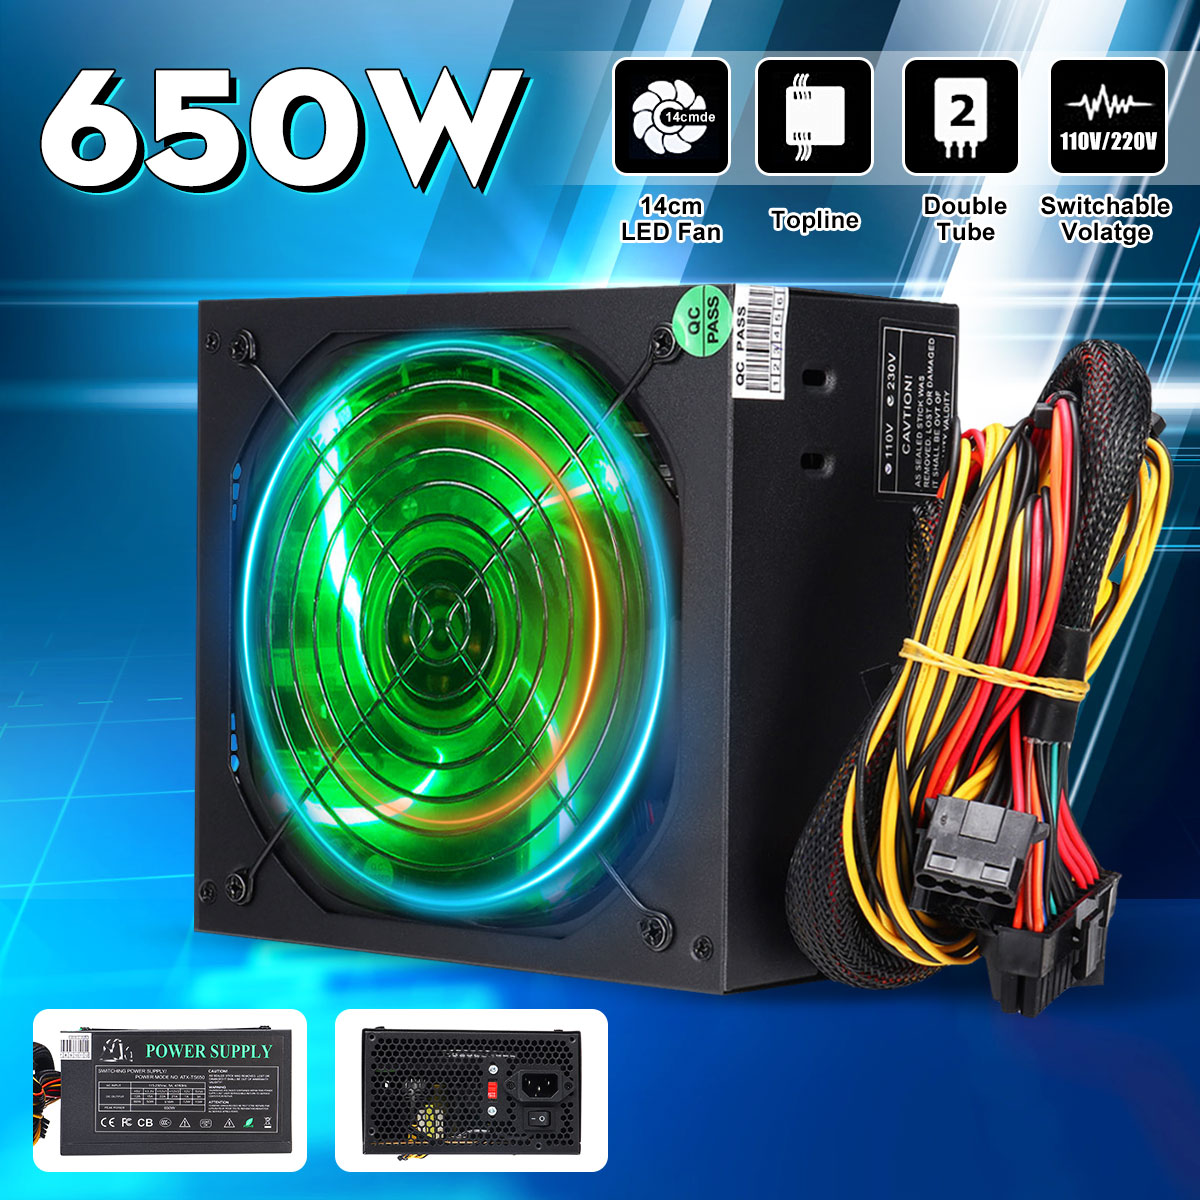 hight resolution of  wiring diagram 650w pc computer power supply module unit 24pin sata quiet green led atx power supply schematic